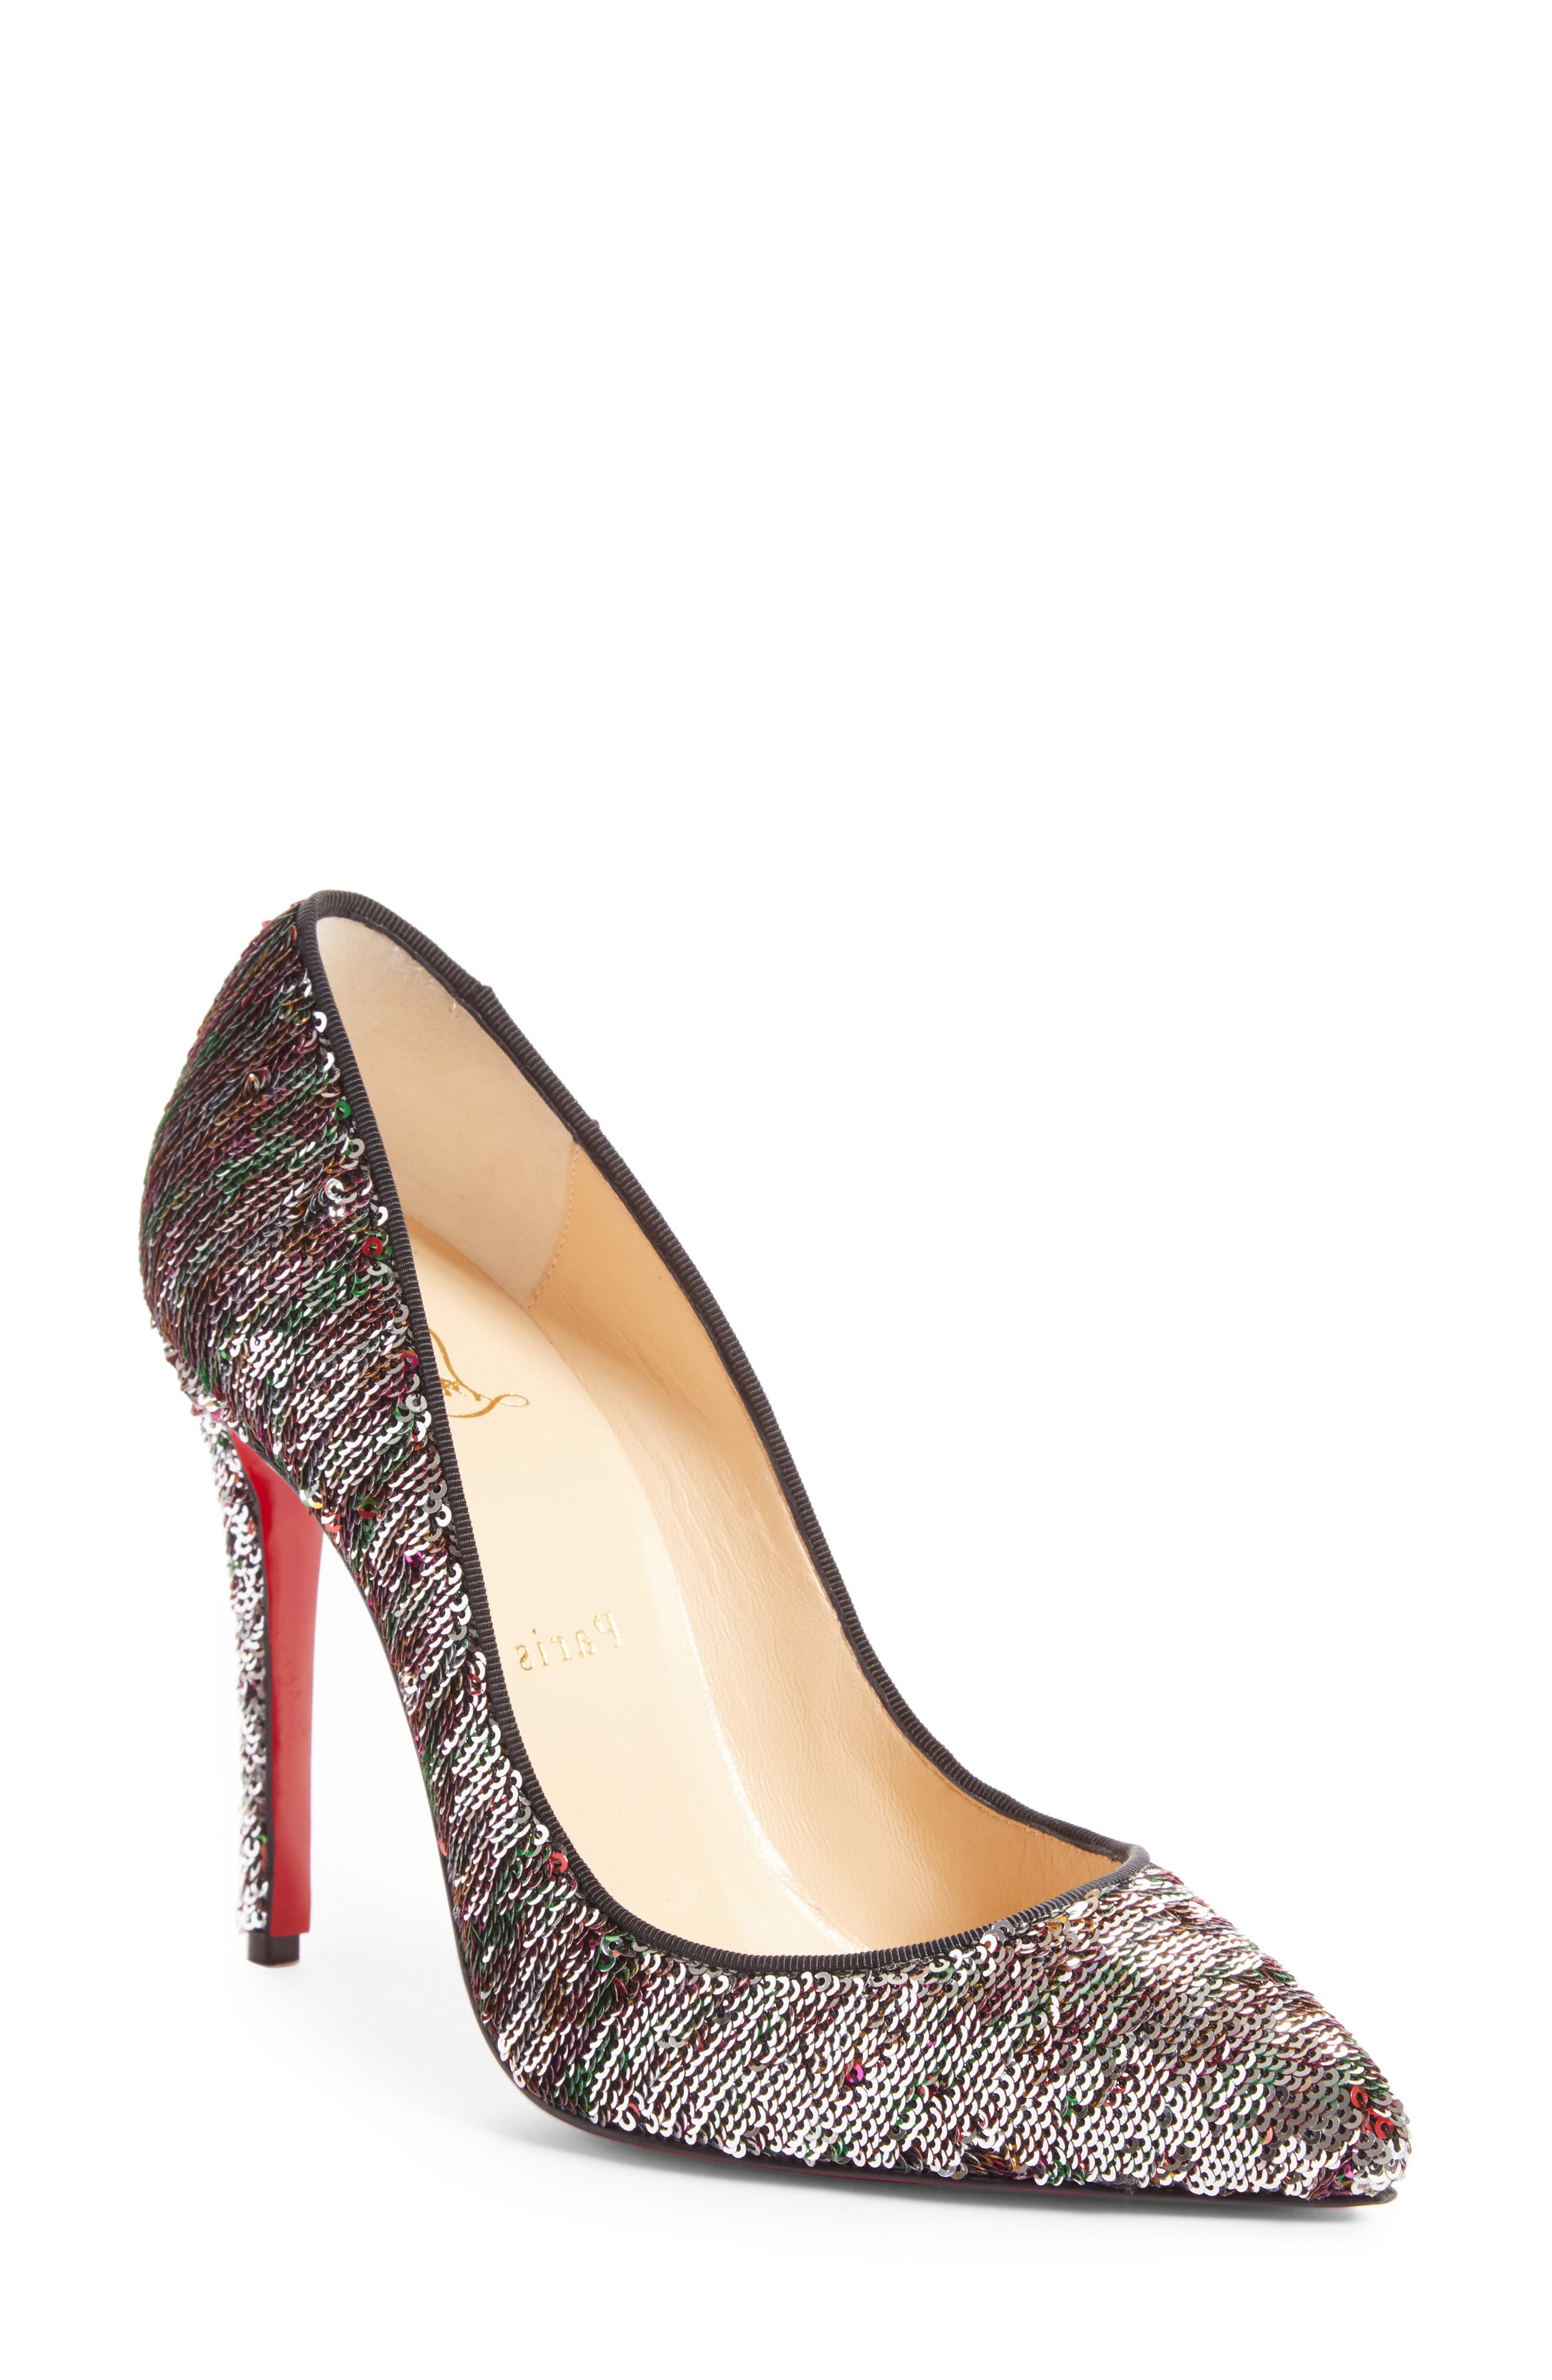 Pigalle Follies Sequin Pointy Toe Pump,                             Main thumbnail 1, color,                             040